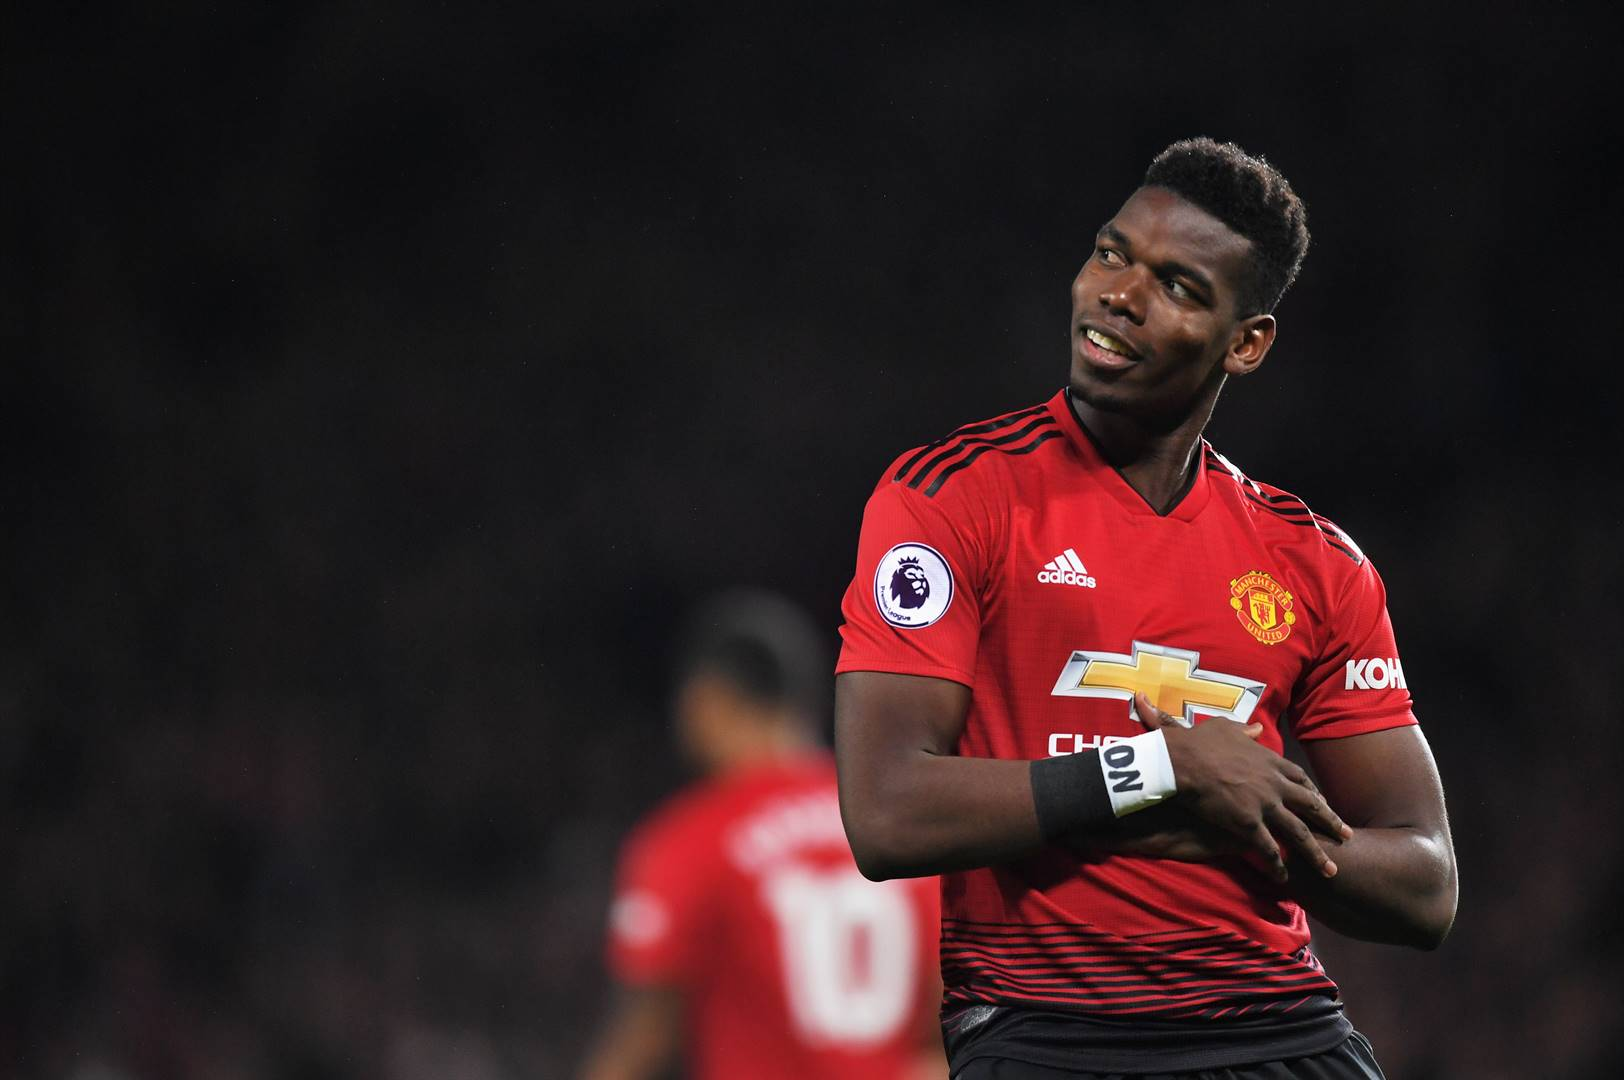 Manchester United midfielder Paul Pogba is the latest football star to test positive for Covid-19. Picture: Michael Regan/Getty Images